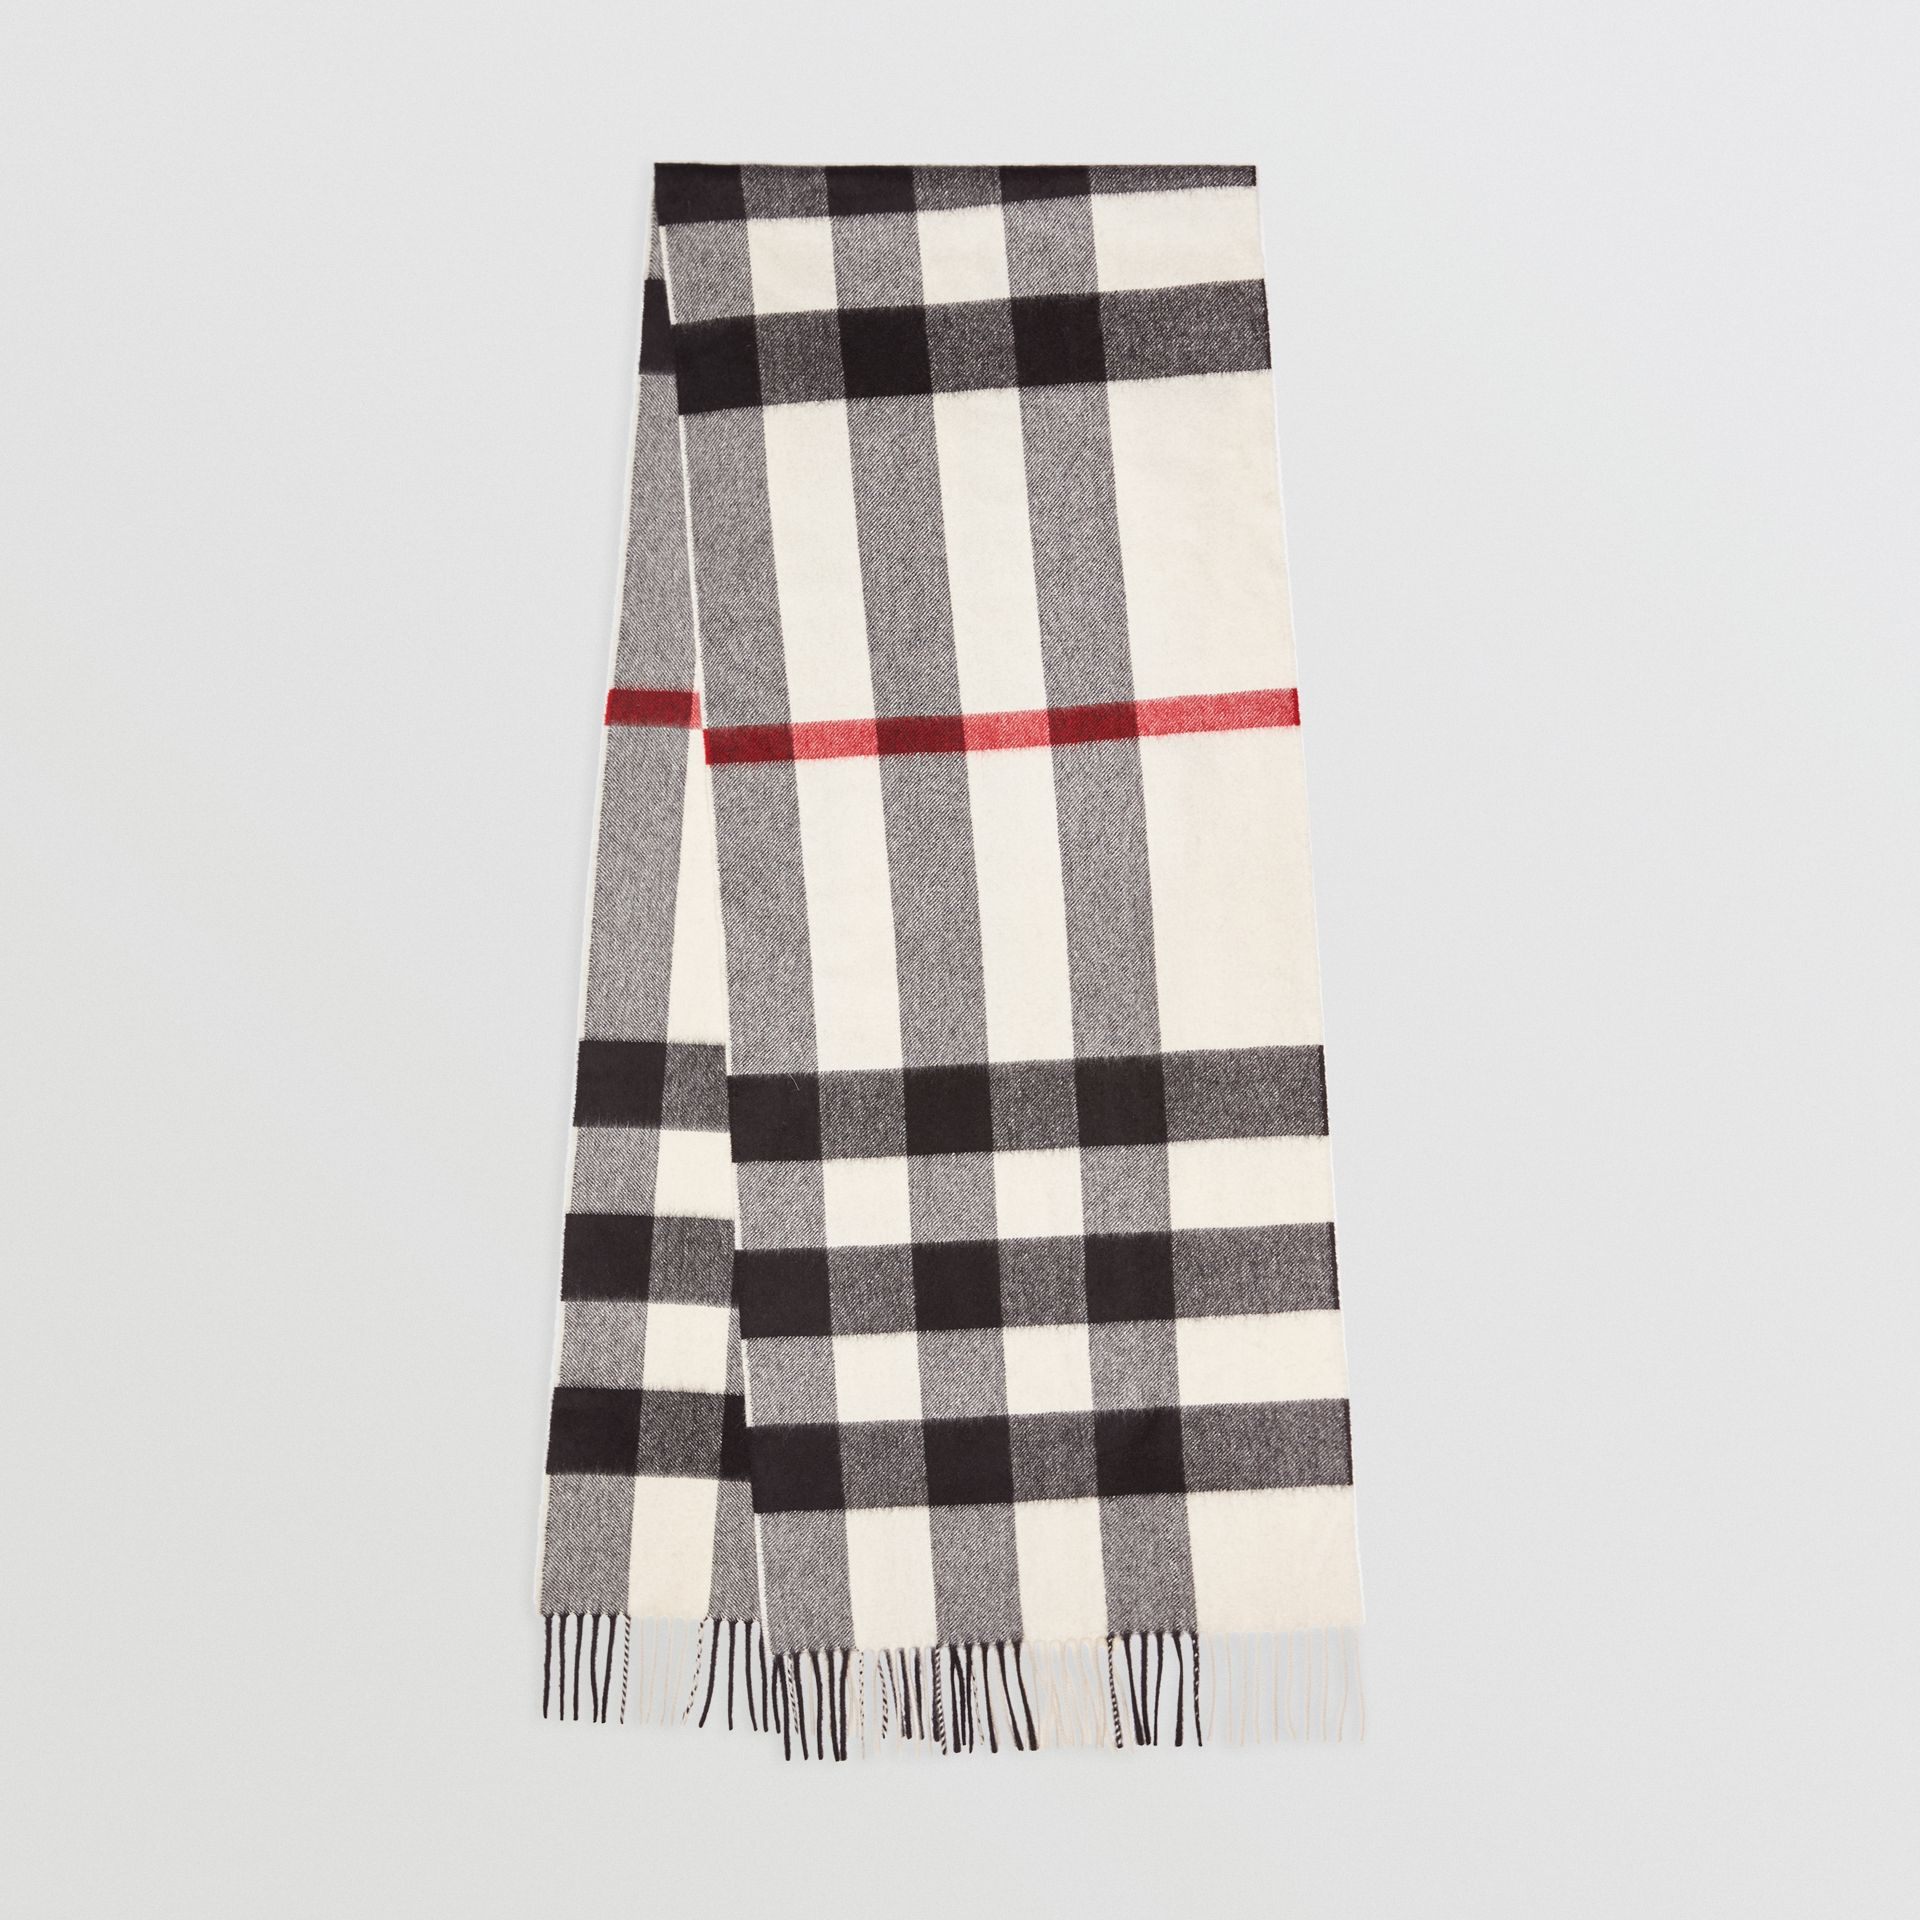 official store details for timeless design The Large Classic Cashmere Scarf in Check in White | Burberry United States